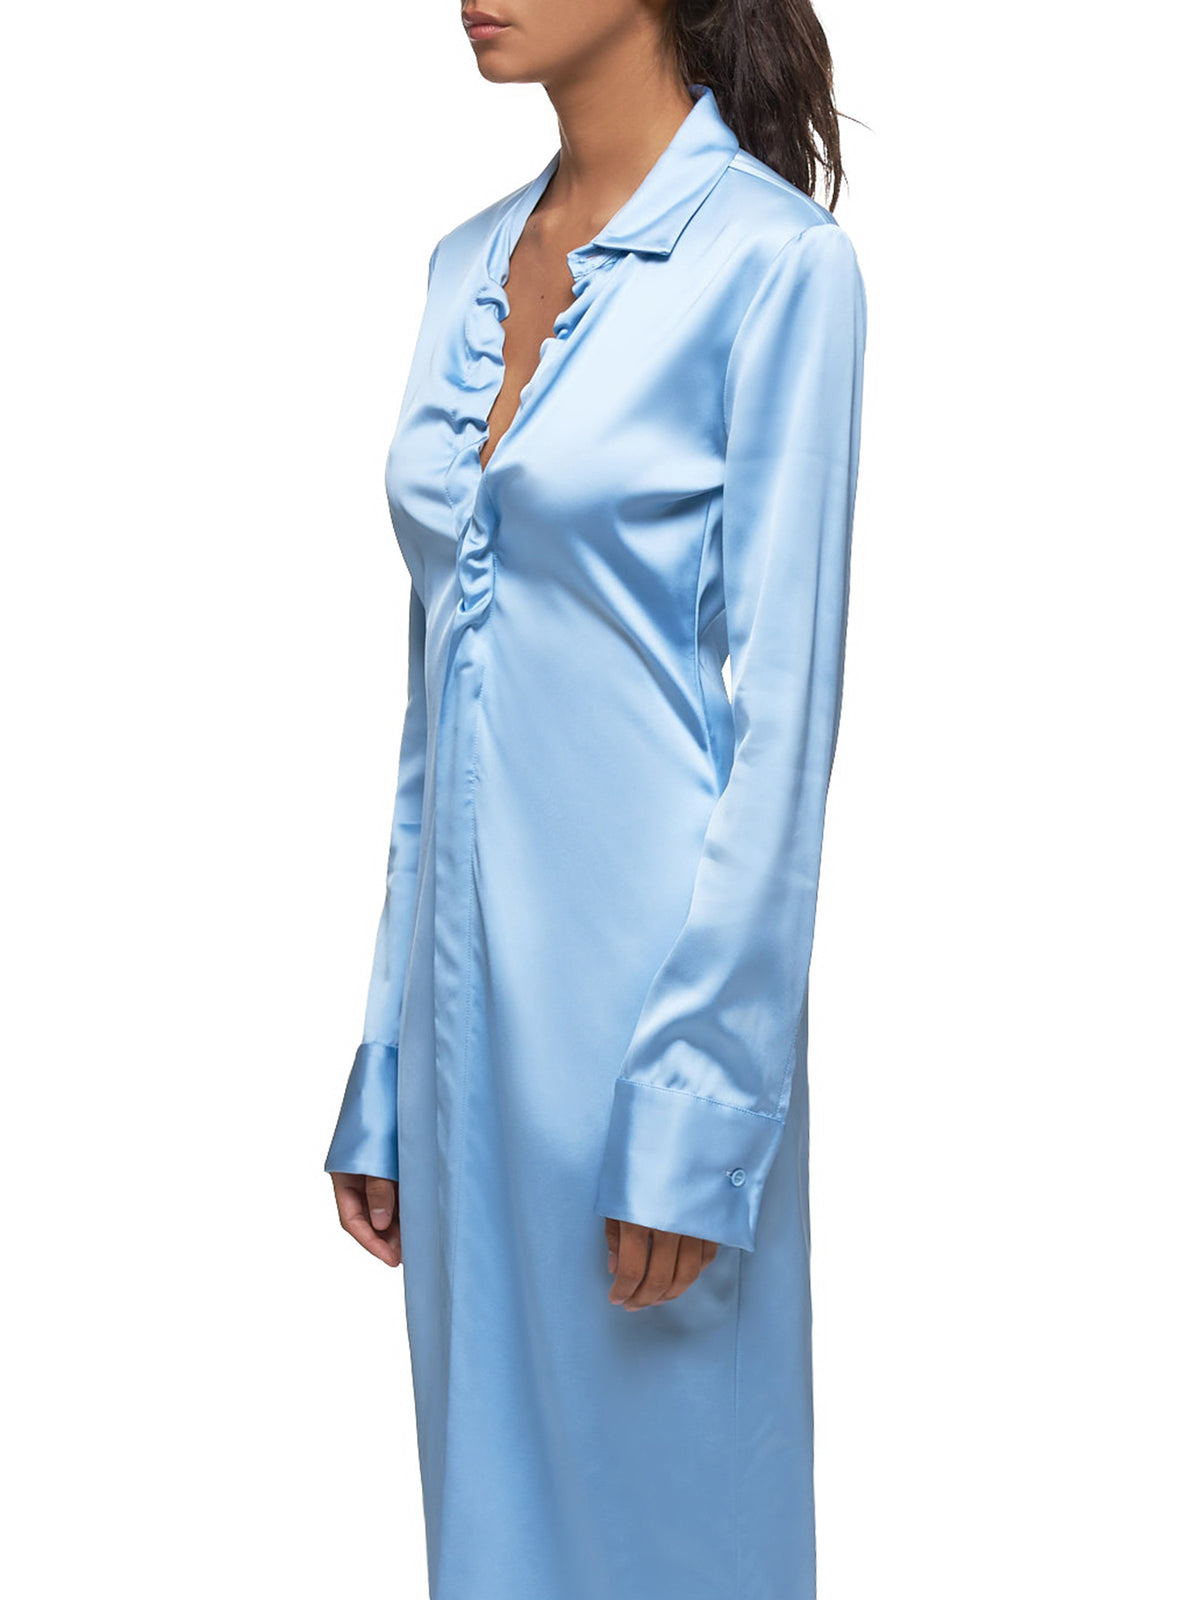 Lacquered Satin Dress (591269VA6Q0-1714-LIGHT-BLUE)